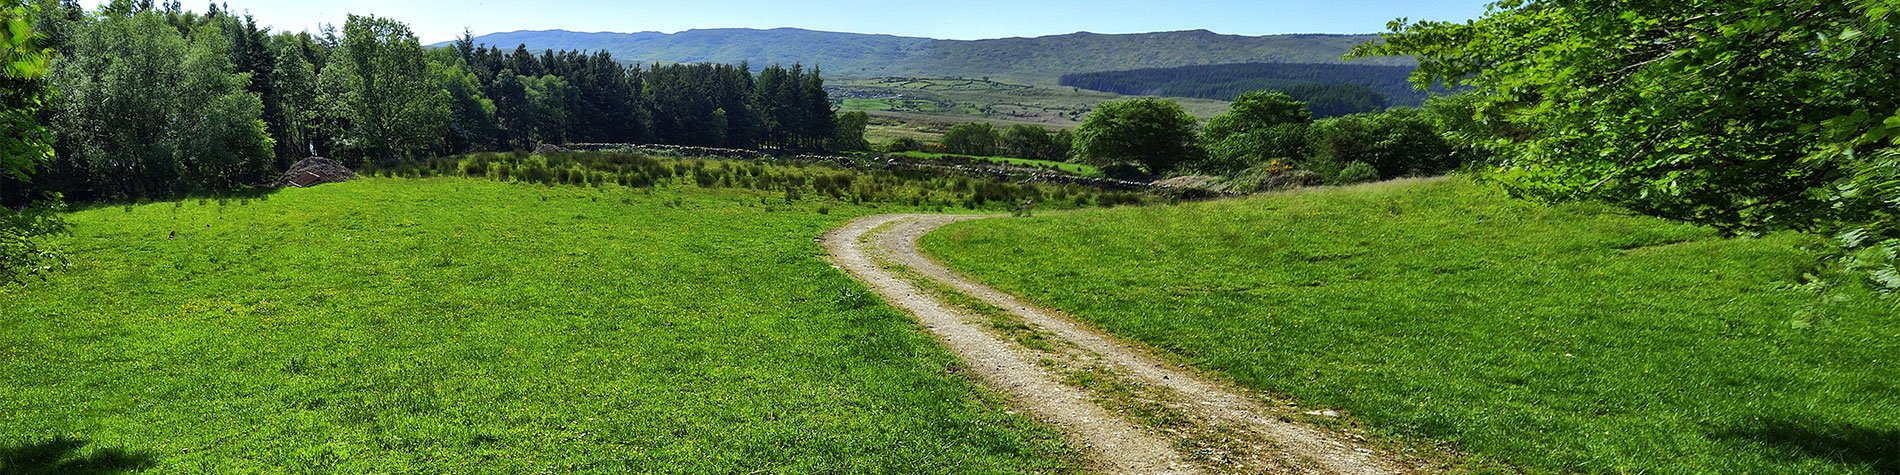 Connemara Nature Surrounding Glengowla Farm and Mines